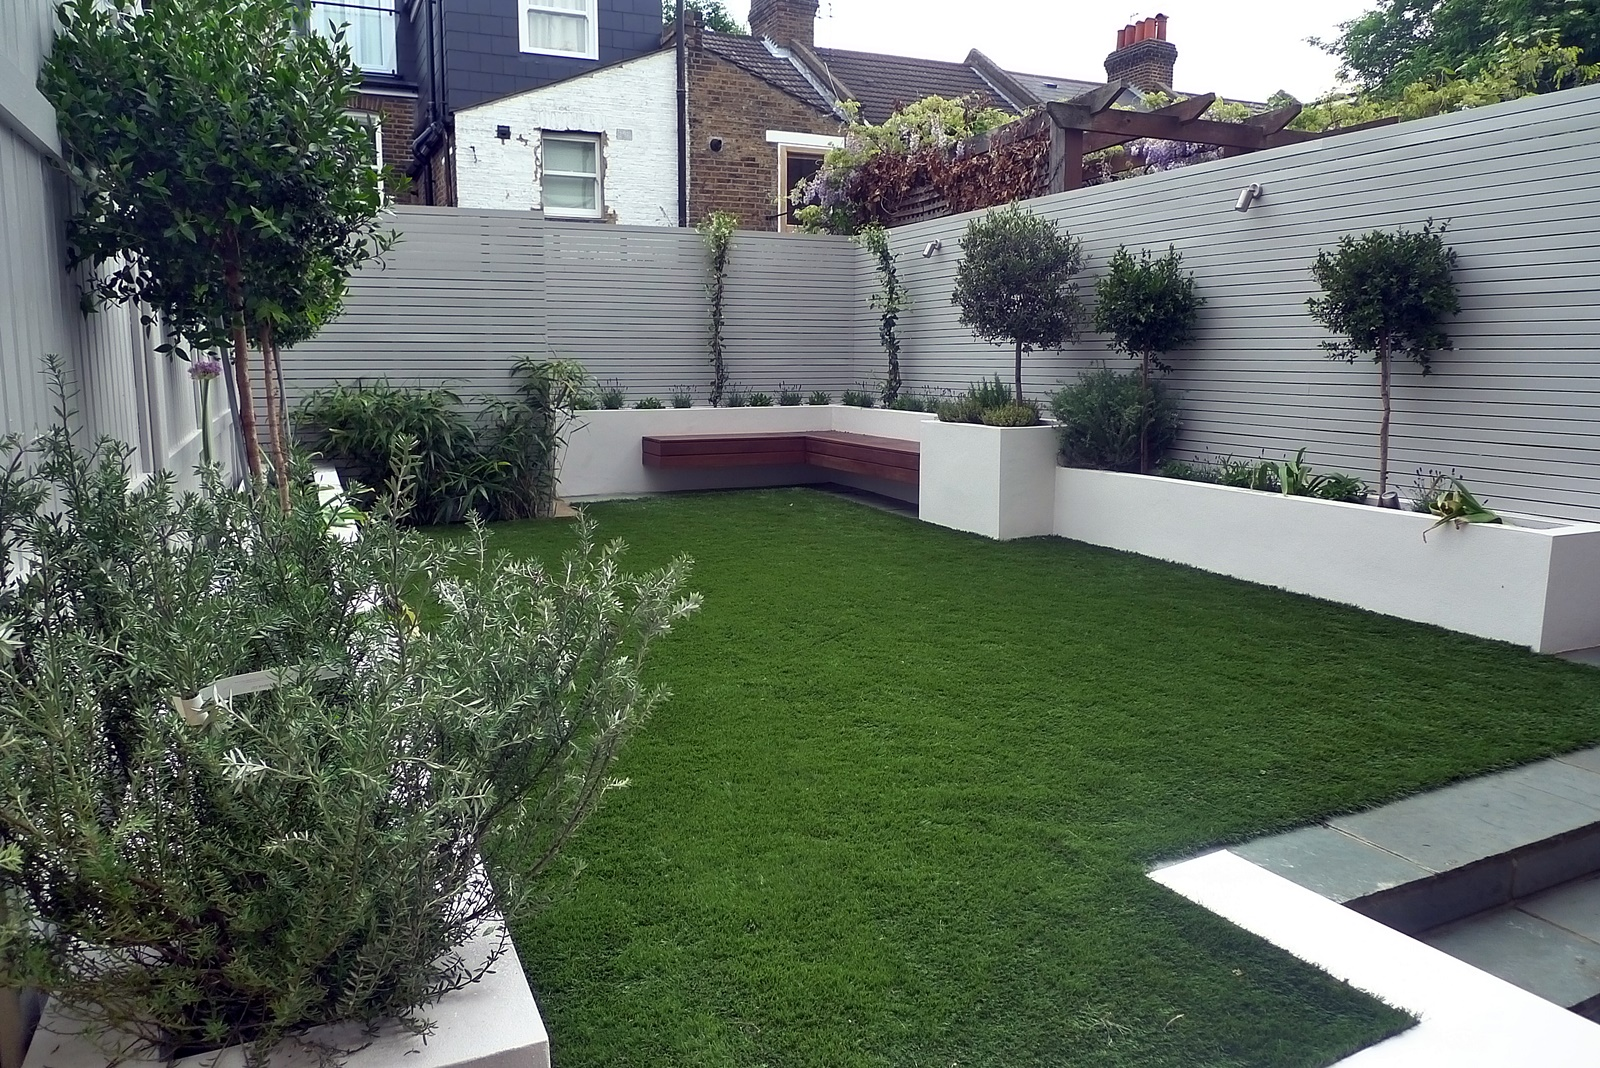 London garden blog london garden blog gardens from Pictures of landscaping ideas